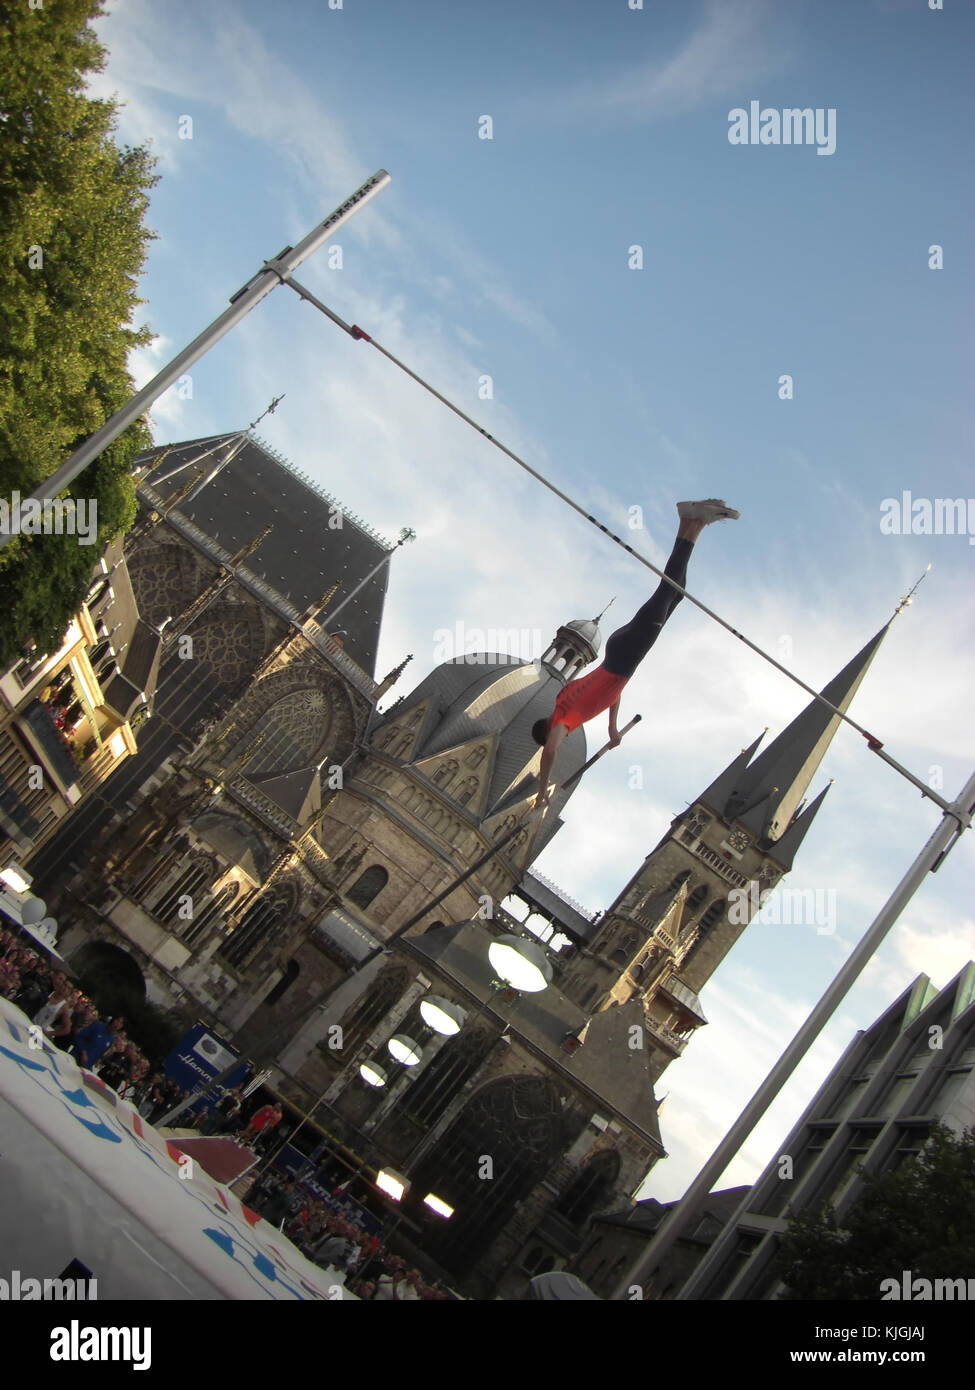 Aachen, Germany - September 2, 2009: NetAachen Domspringen, Pole vaulter in front of Aachen Cathedral - Stock Image